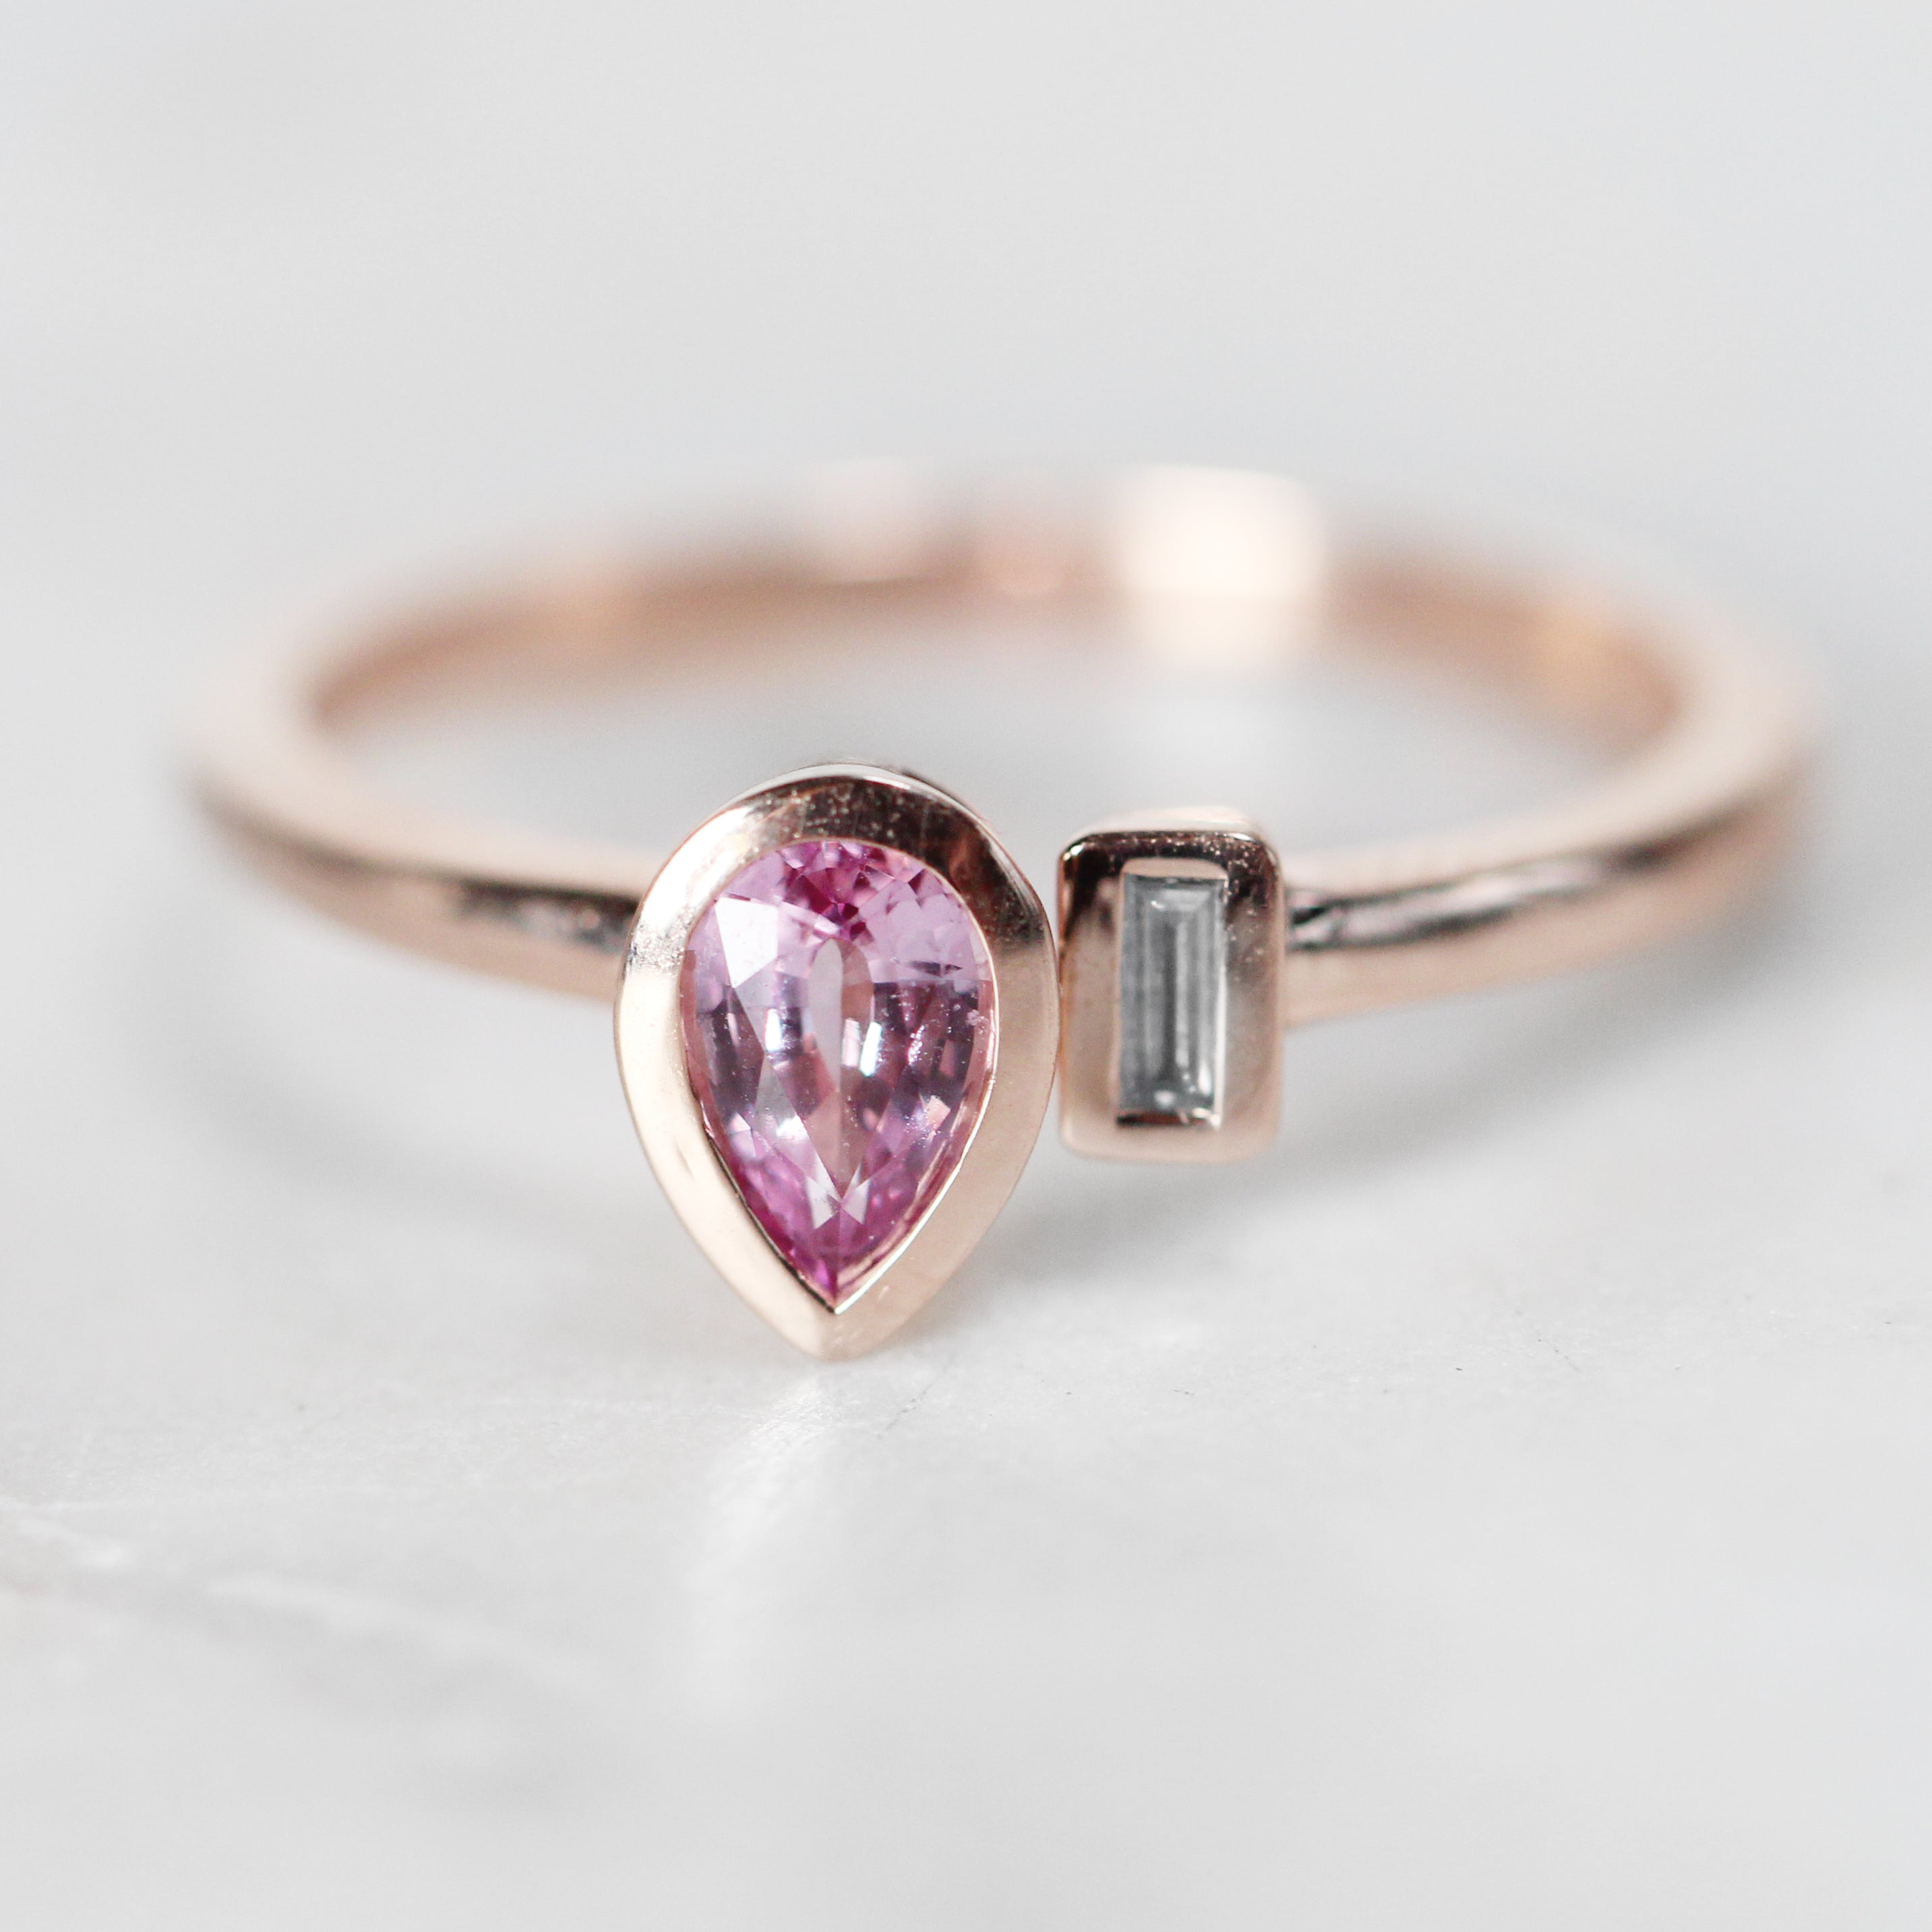 Hazel Ring with Pink Sapphire Pear and Diamond Baguette - Your choice of 14k gold - Salt & Pepper Celestial Diamond Engagement Rings and Wedding Bands  by Midwinter Co.